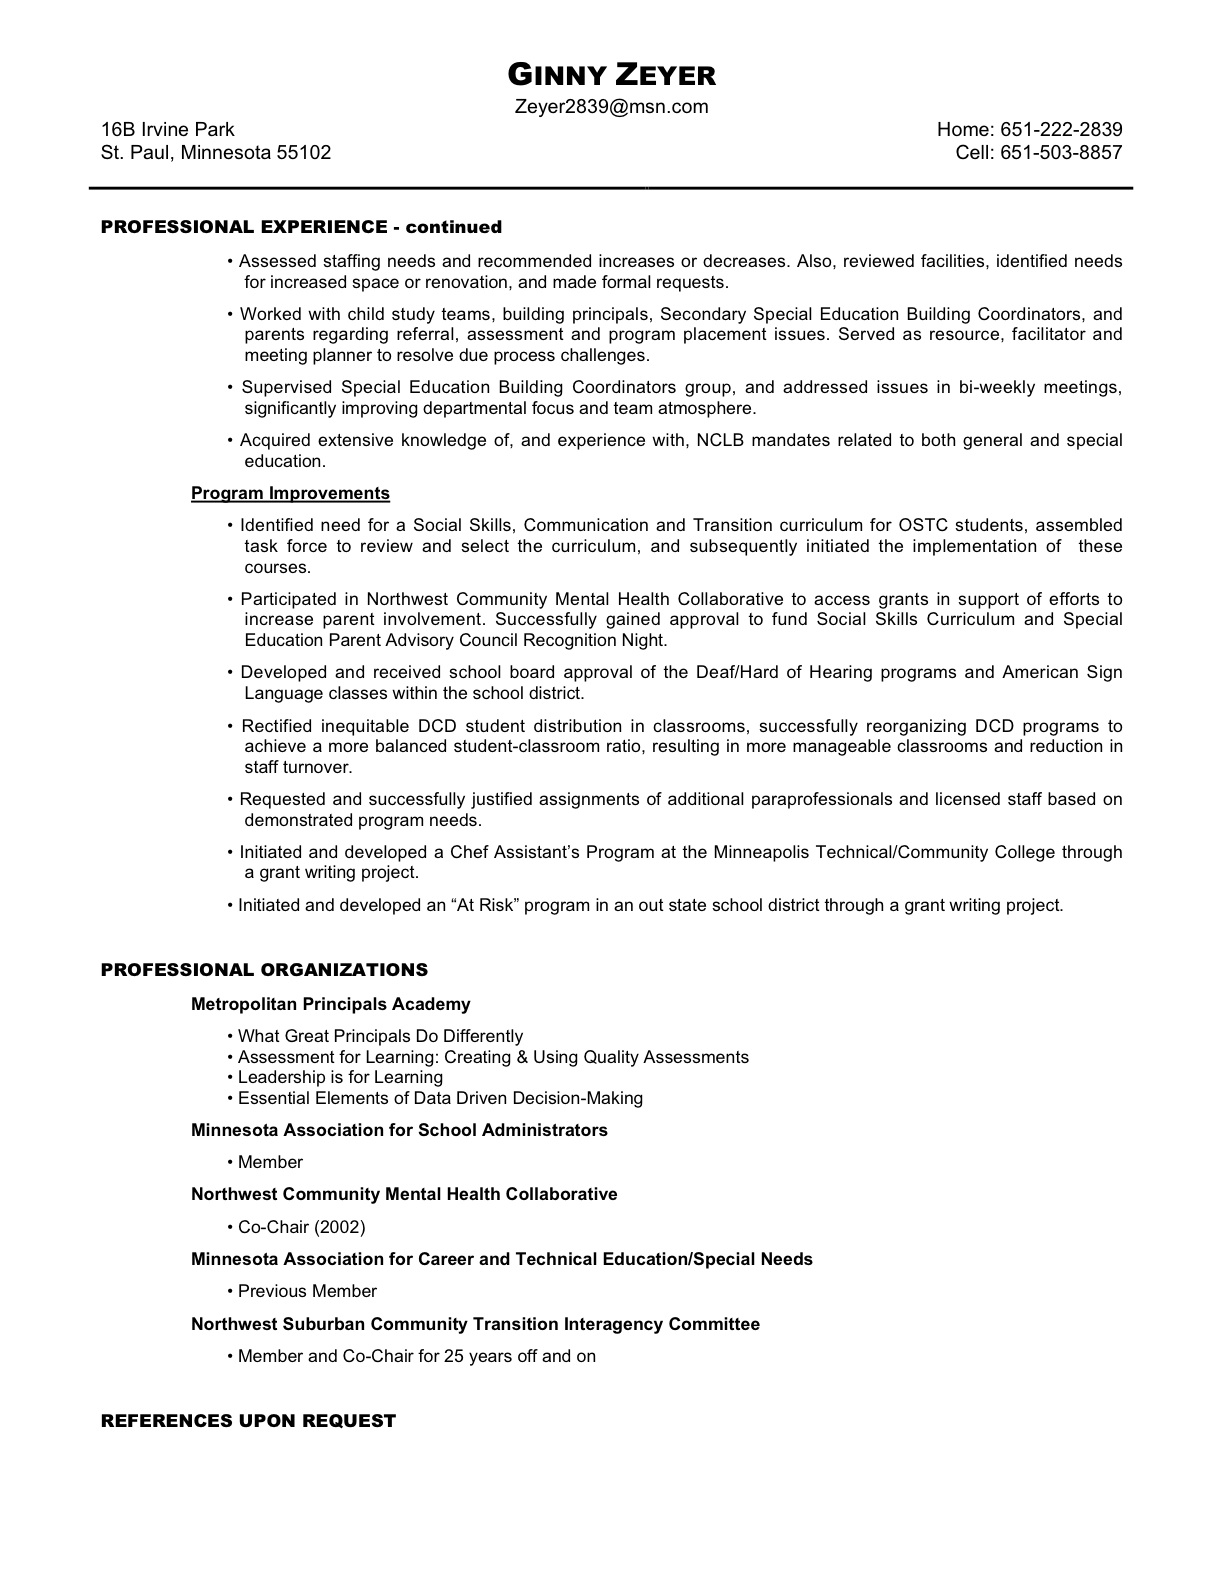 resume qualifications diepieche tk ginnys resume2 resume qualifications 24 04 2017